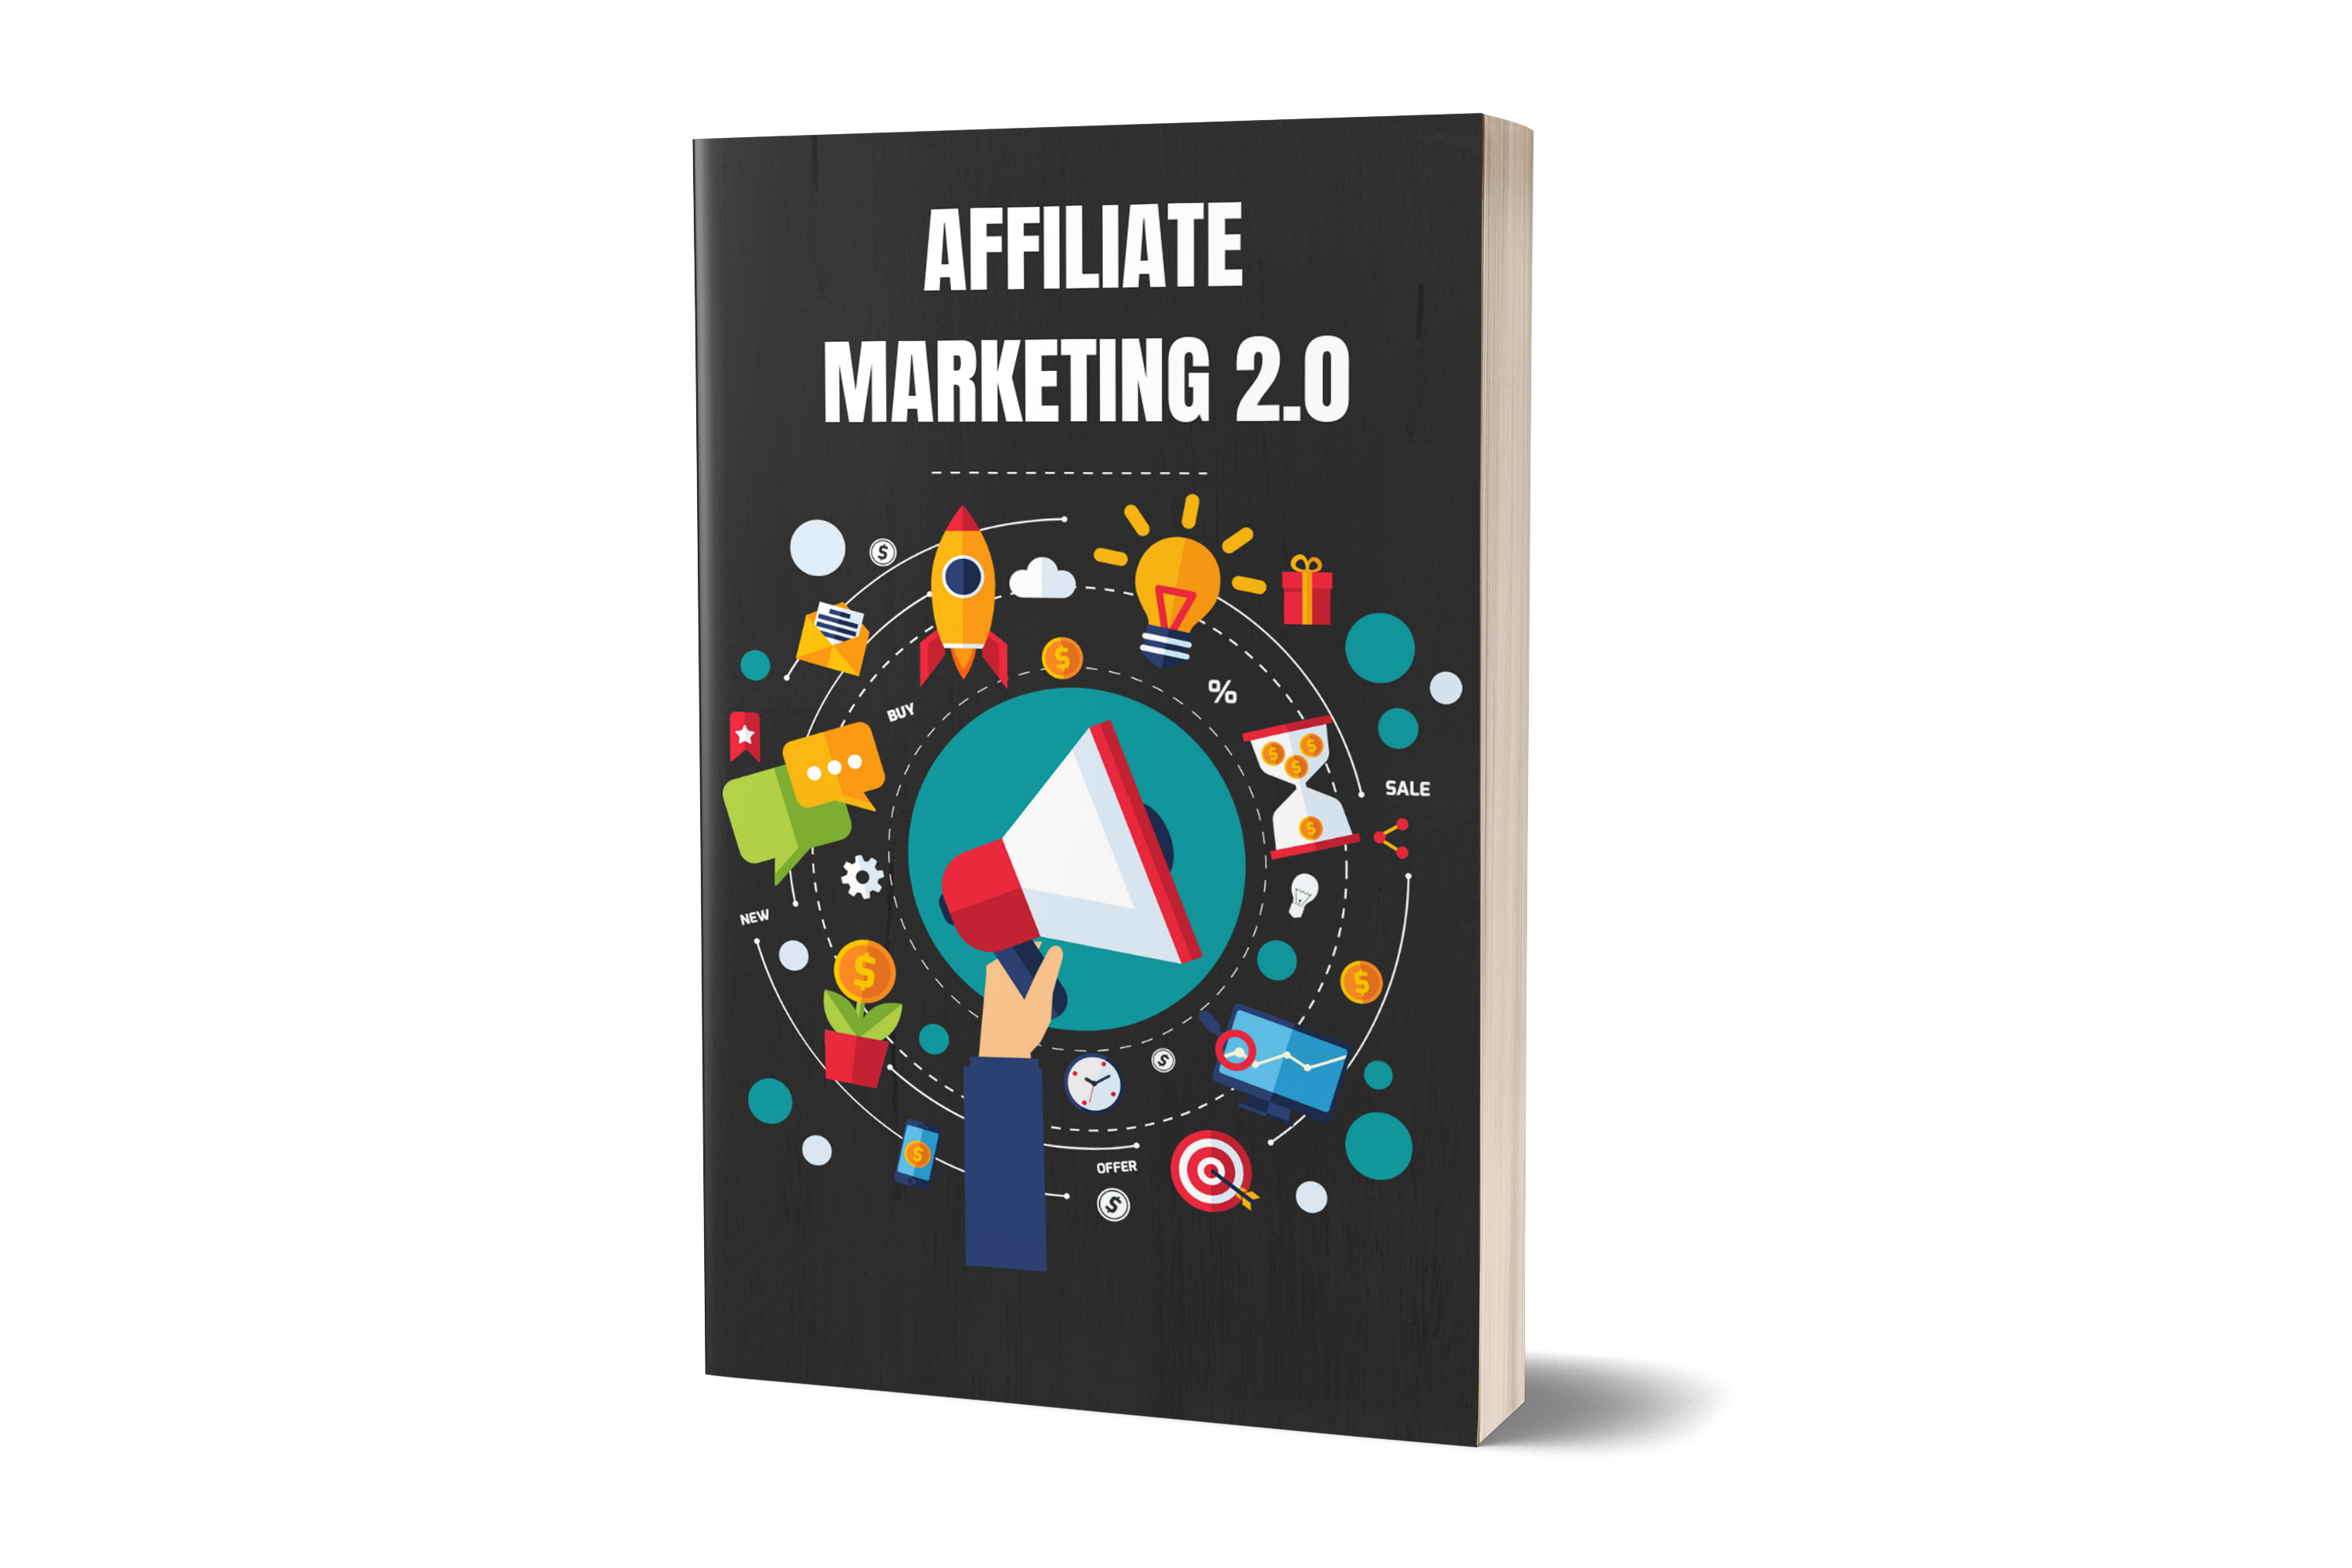 Geld verdienen mit den neuesten Affiliate Marketing Taktiken!